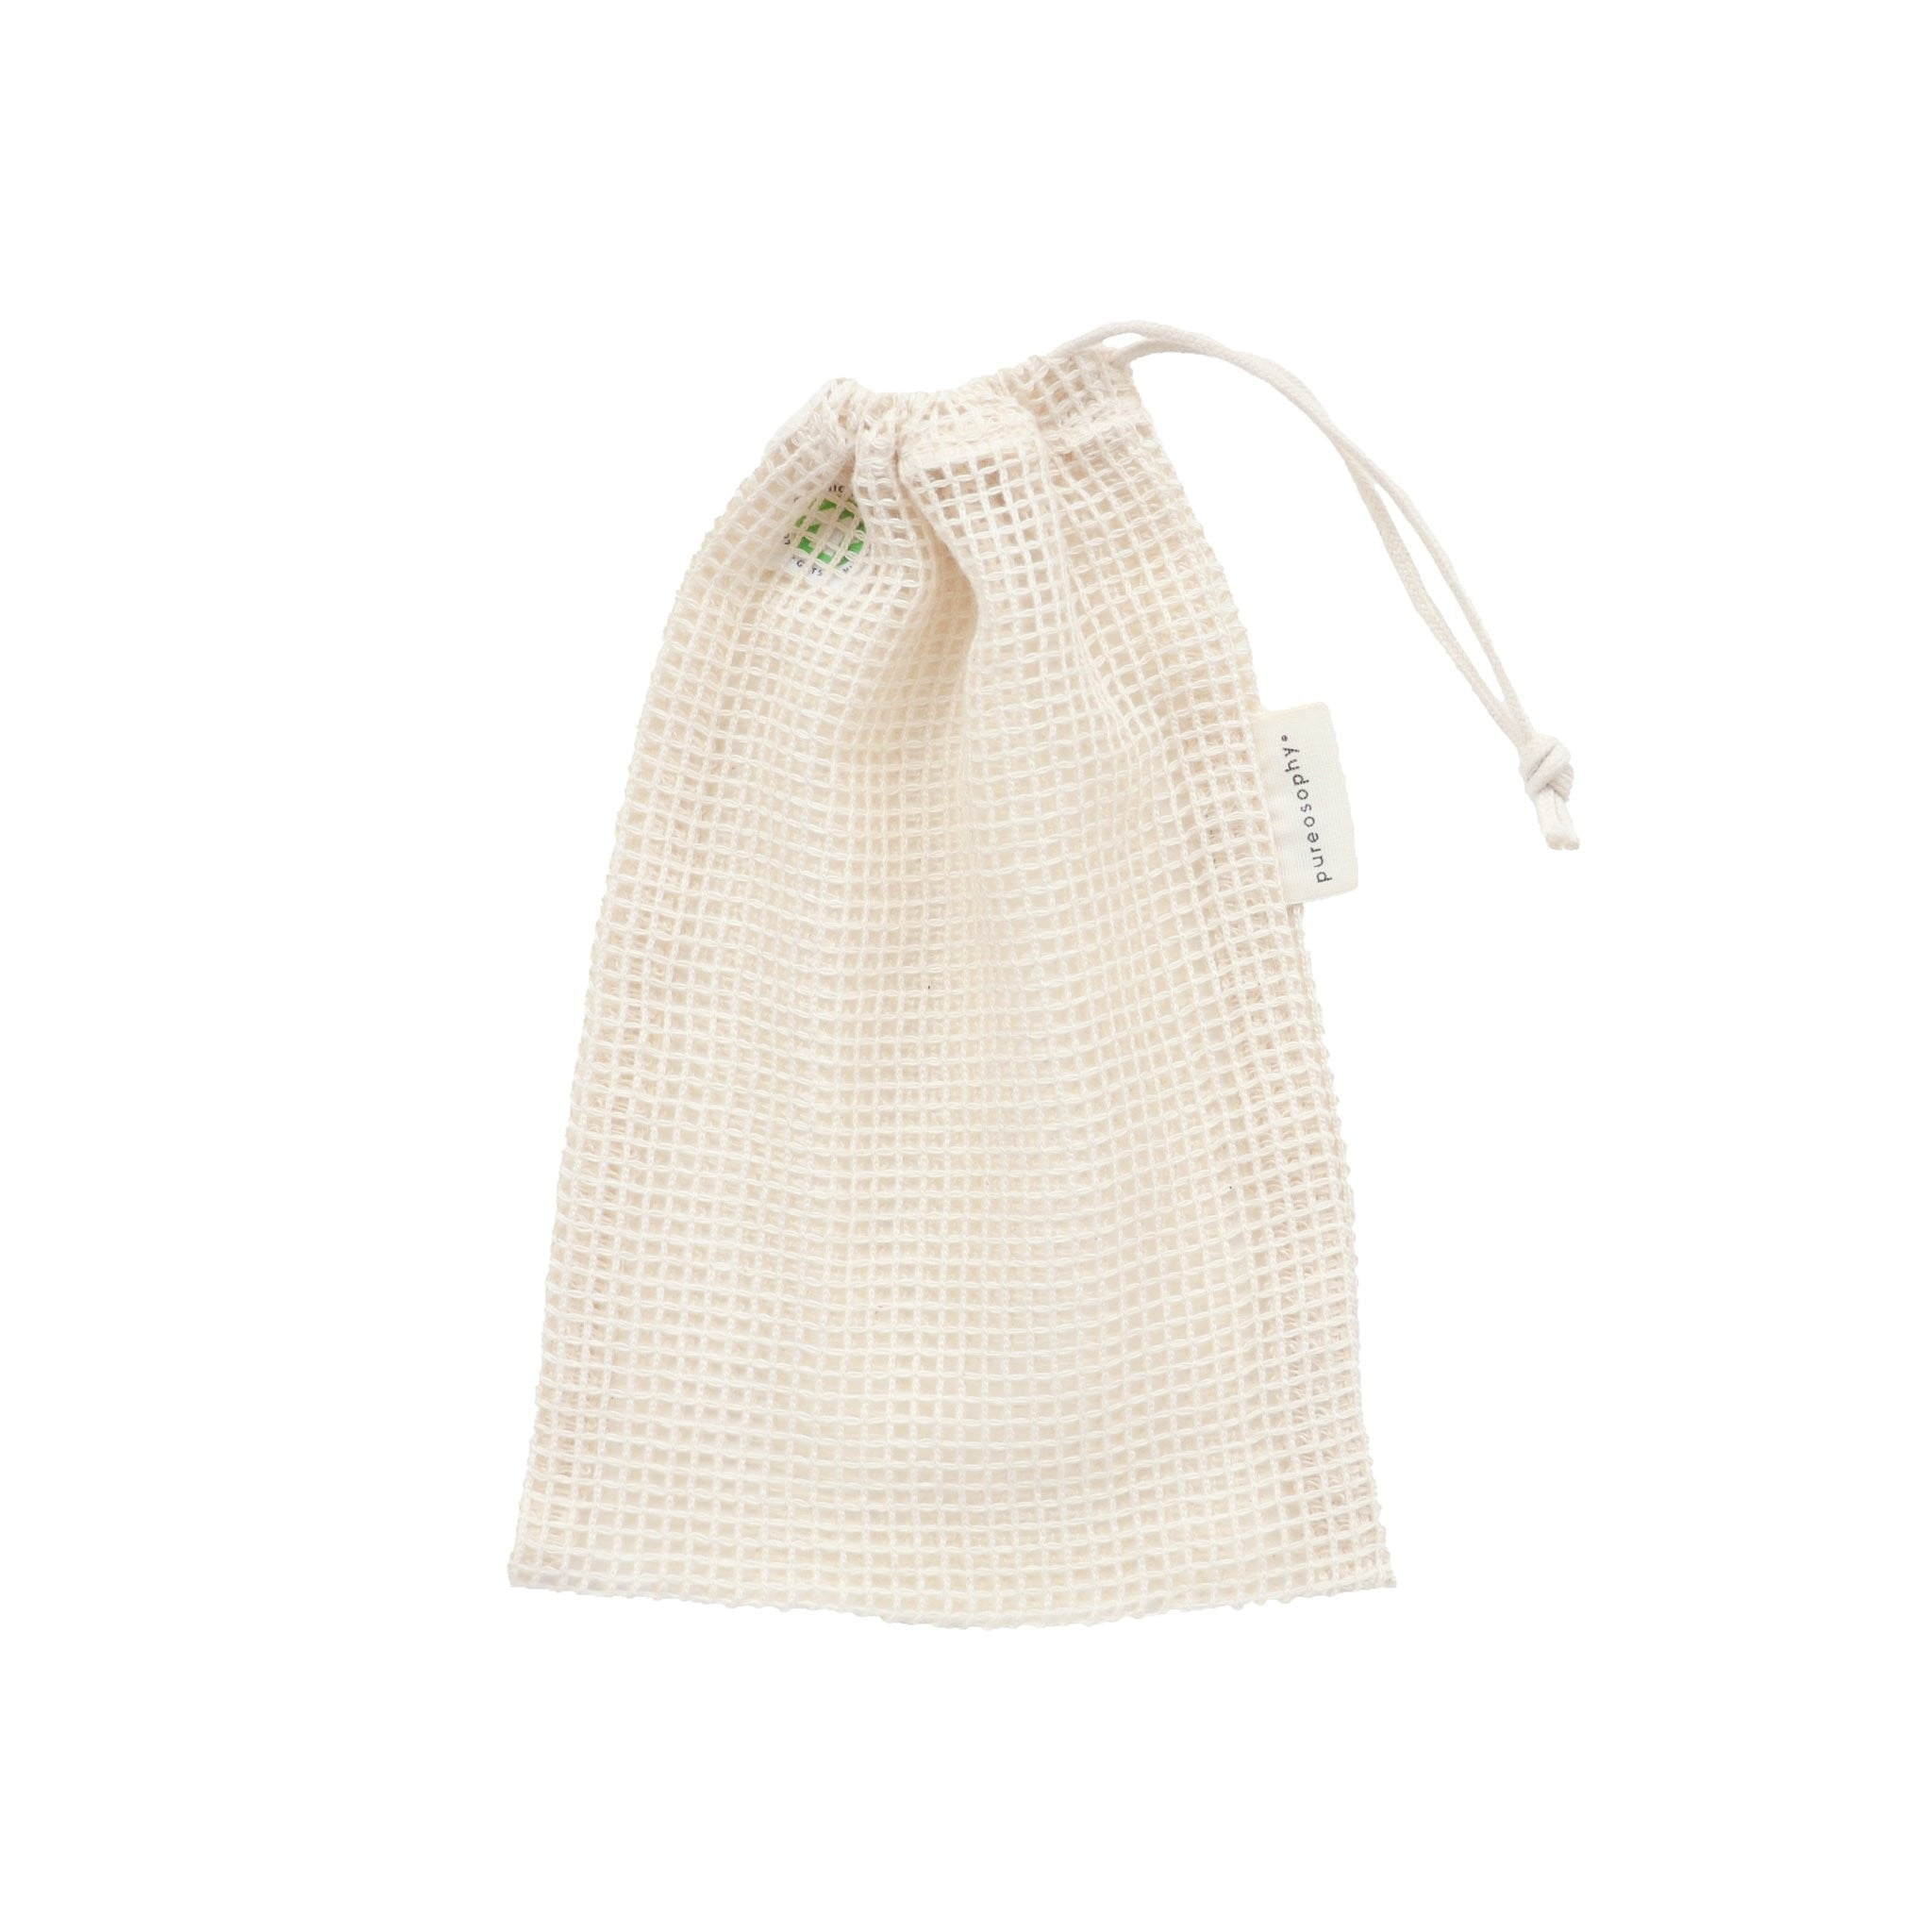 Small organic cotton mesh produce bag